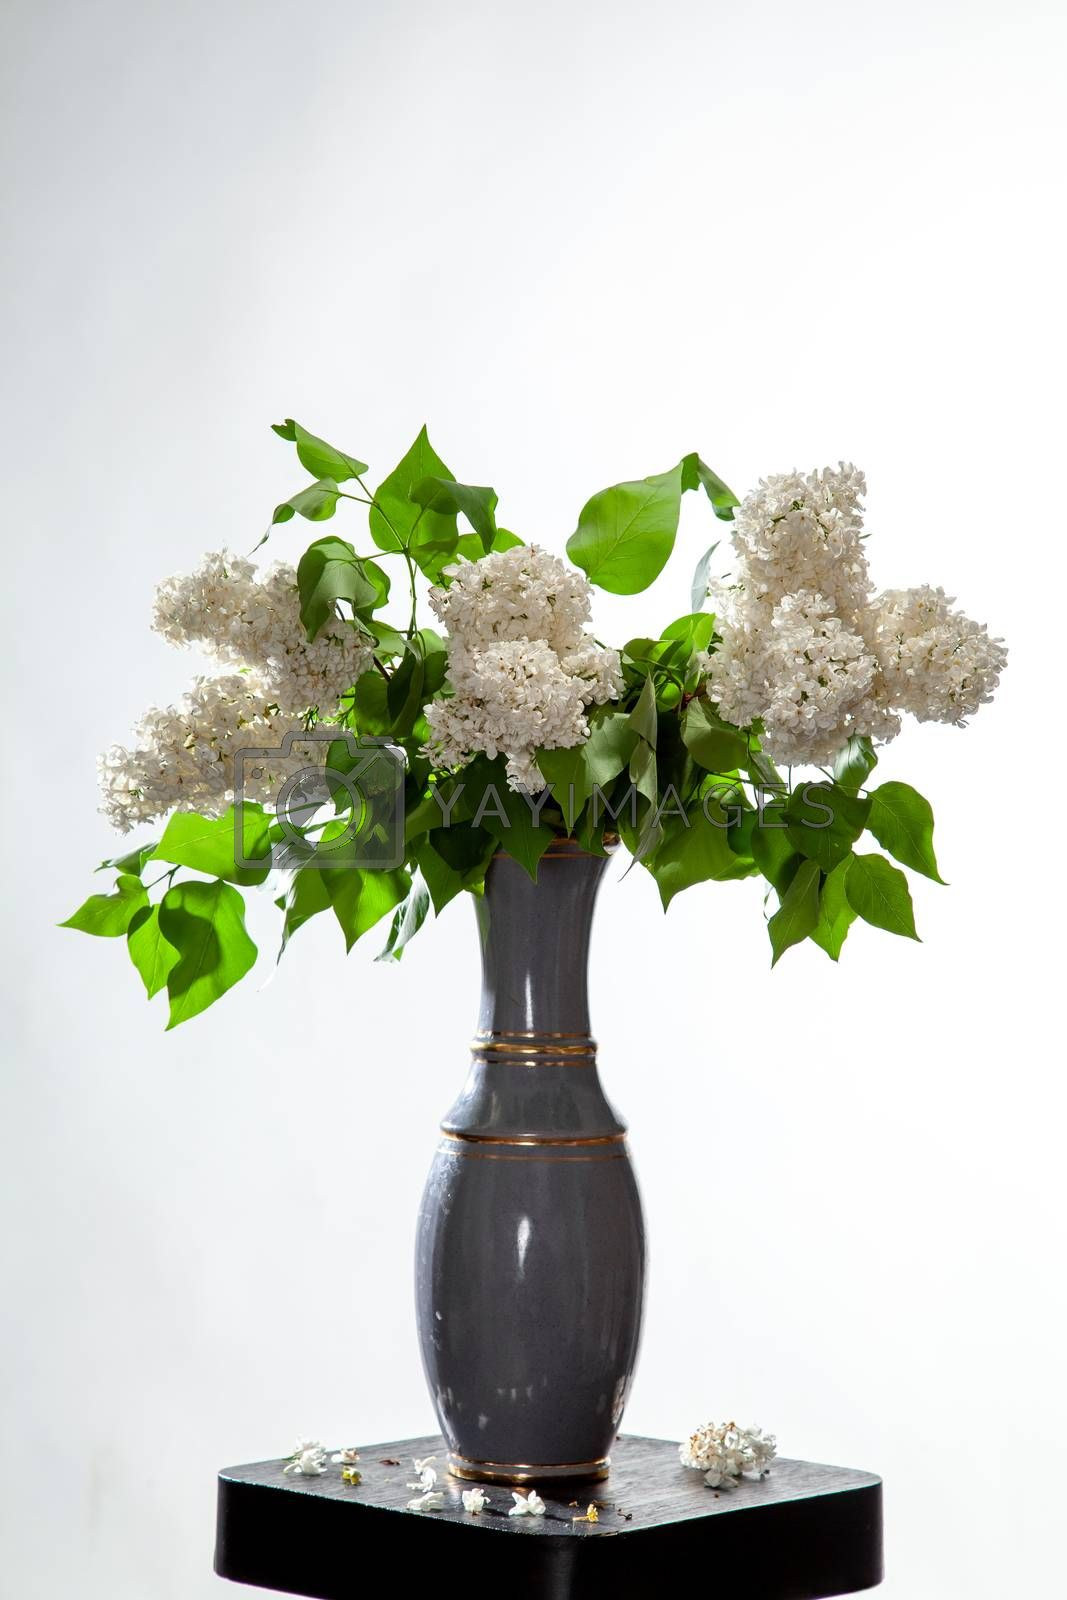 Branches of white lilac in vase on bwhite background. Spring branch of blooming lilac on the table with white background. Fallen lilac flowers on the table.